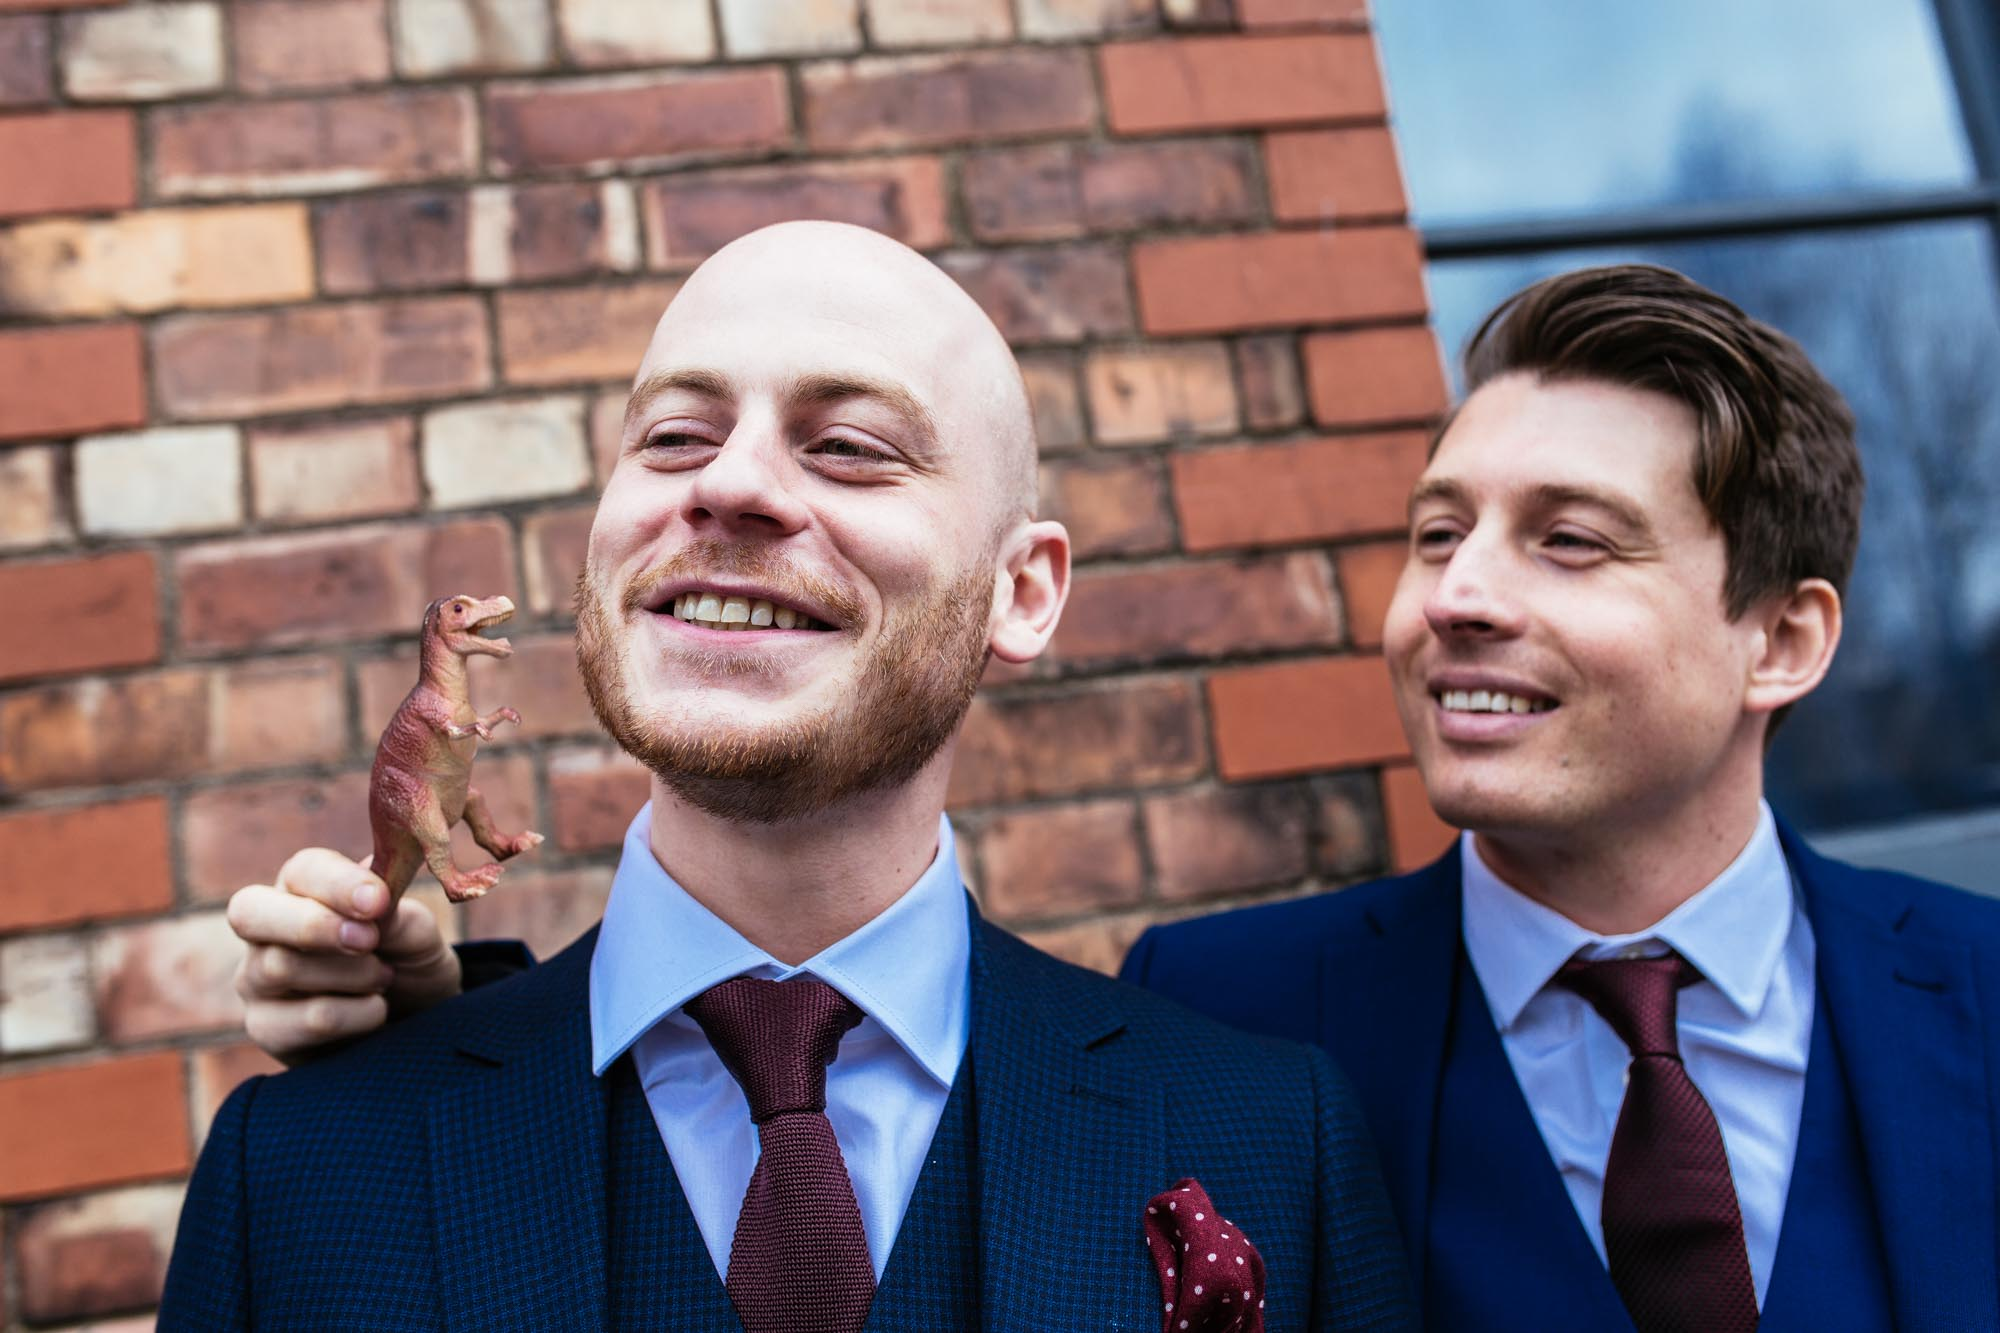 Manchester Wedding Photographer On the 7th